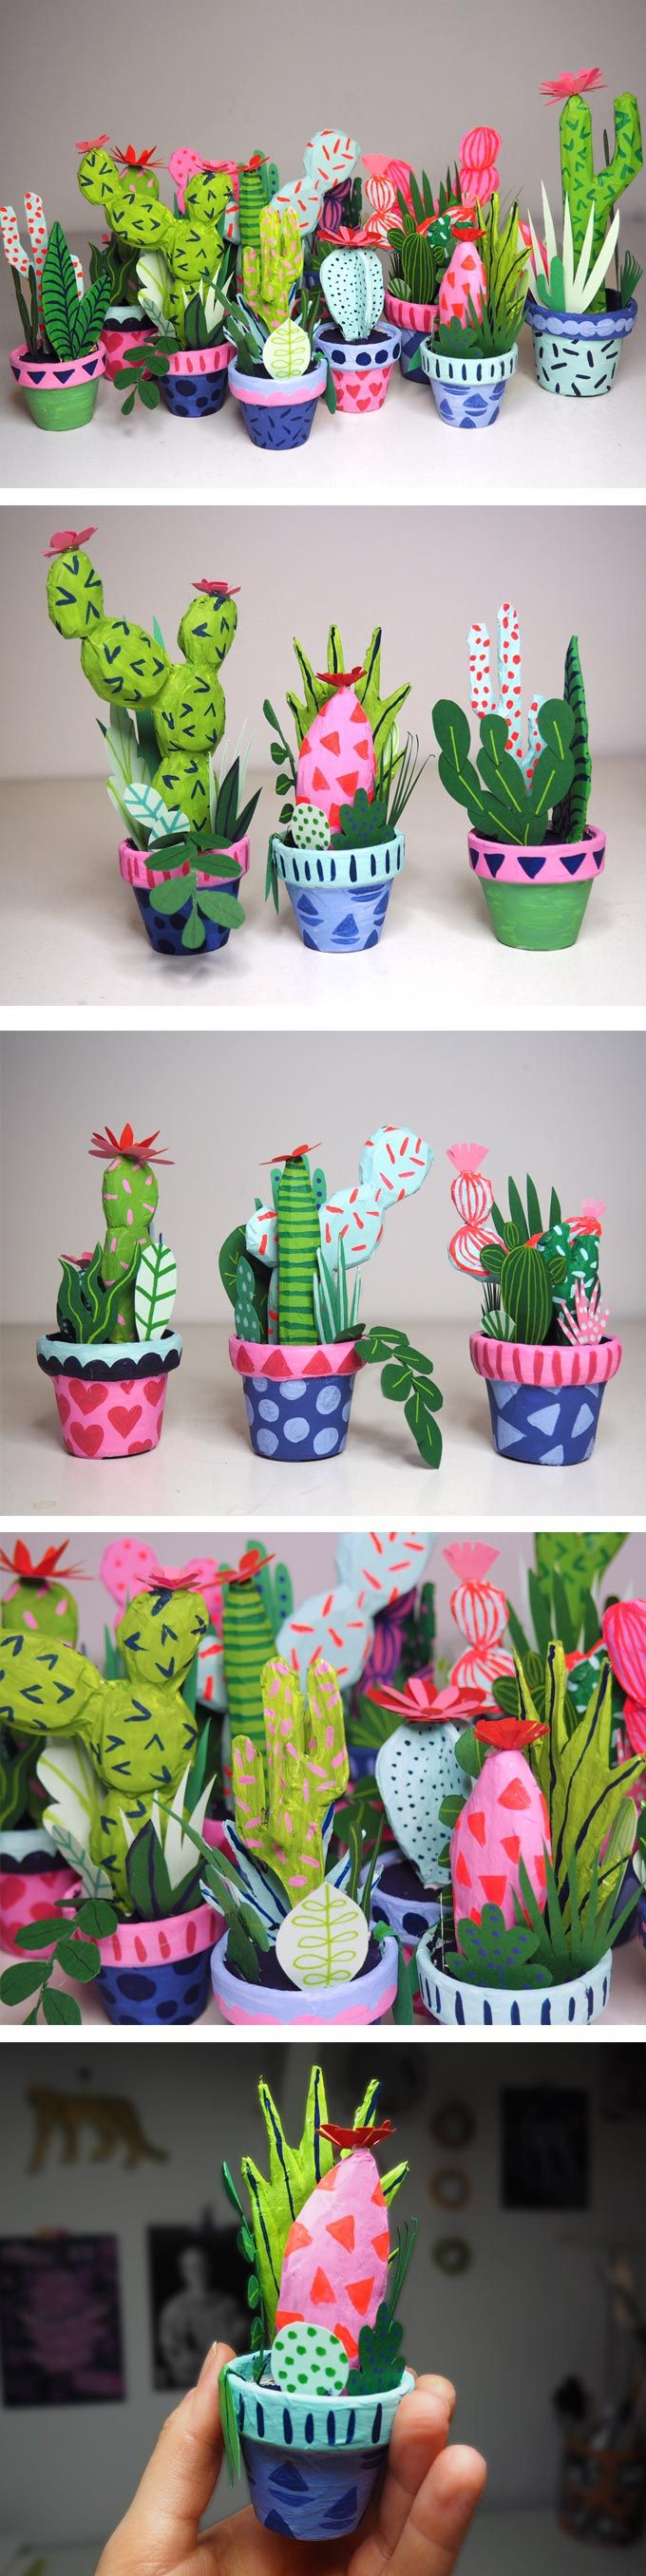 Illustrator Kim Sielbeck uses paper, polymer clay, and more to construct tiny cacti you can hold in the palm of your hand. File under: do want! More